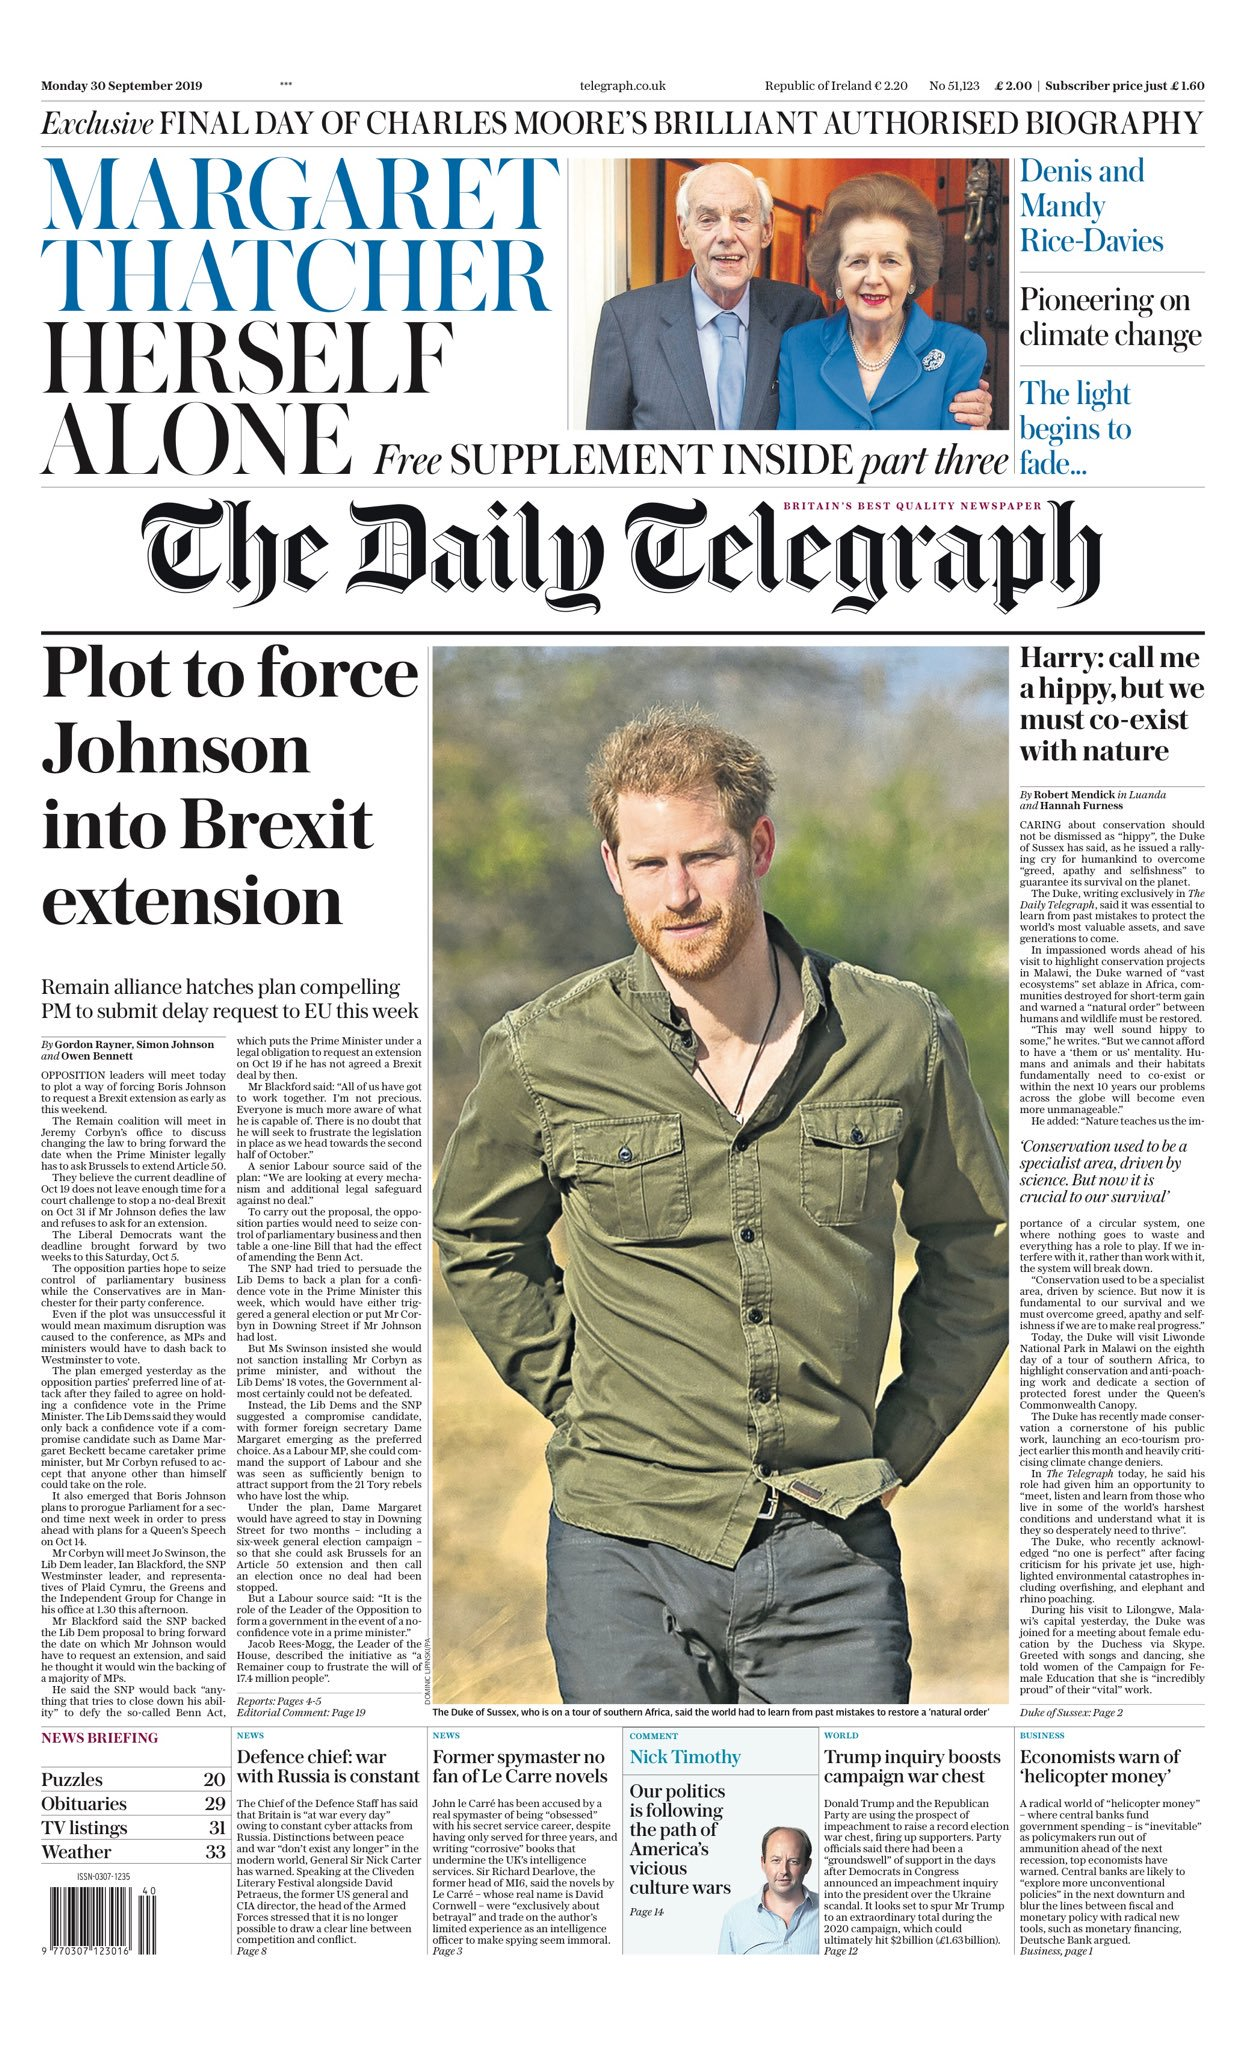 The front page of Monday's Telegraph (Daily Telegraph)